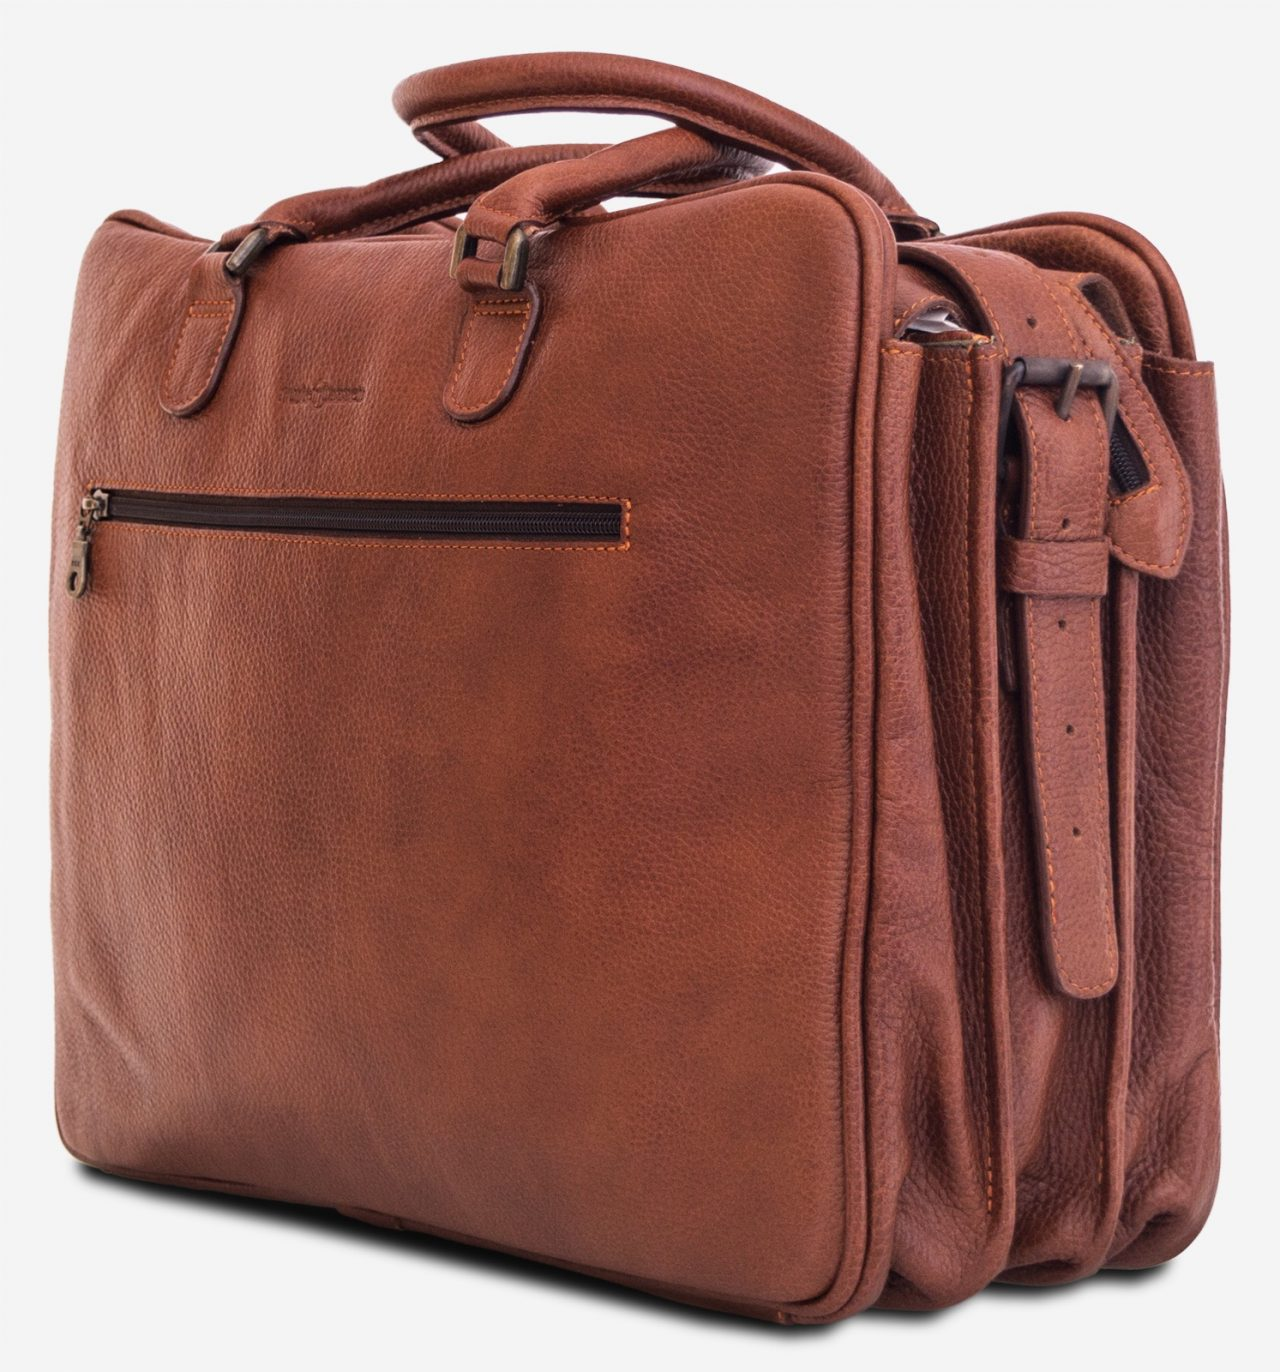 "Side view of the 17"" brown soft leather travel bag."